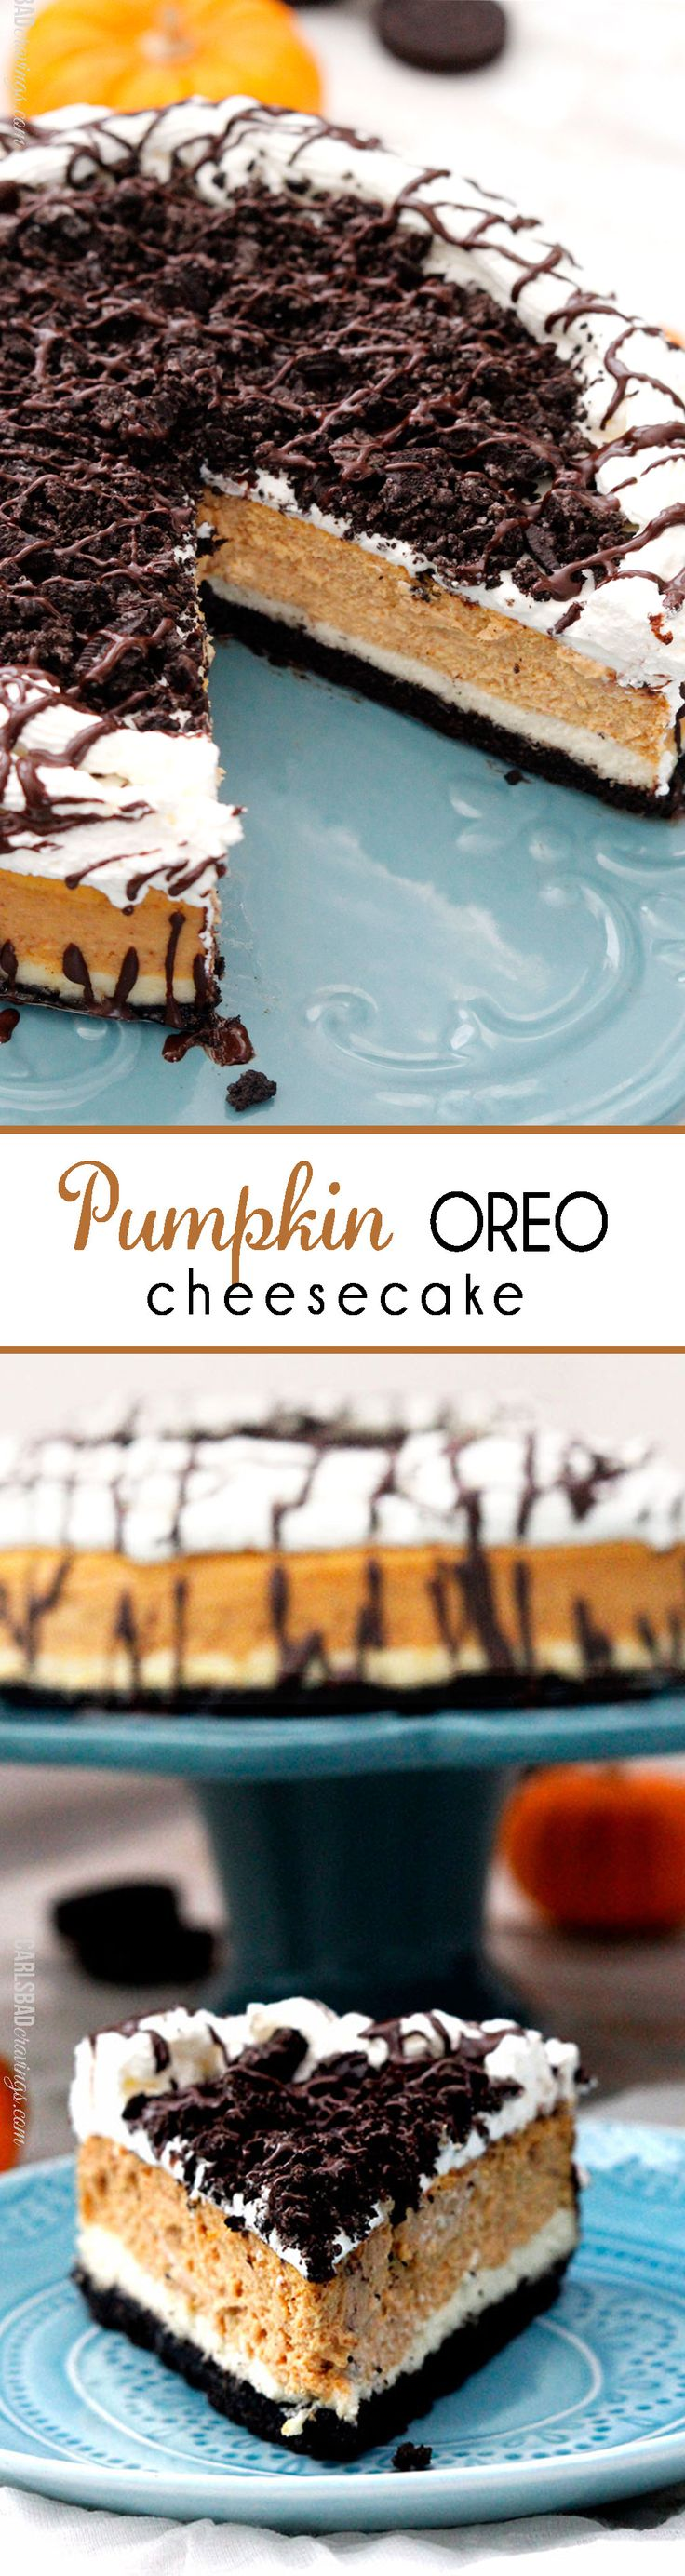 268 best CHEESECAKE images on Pinterest